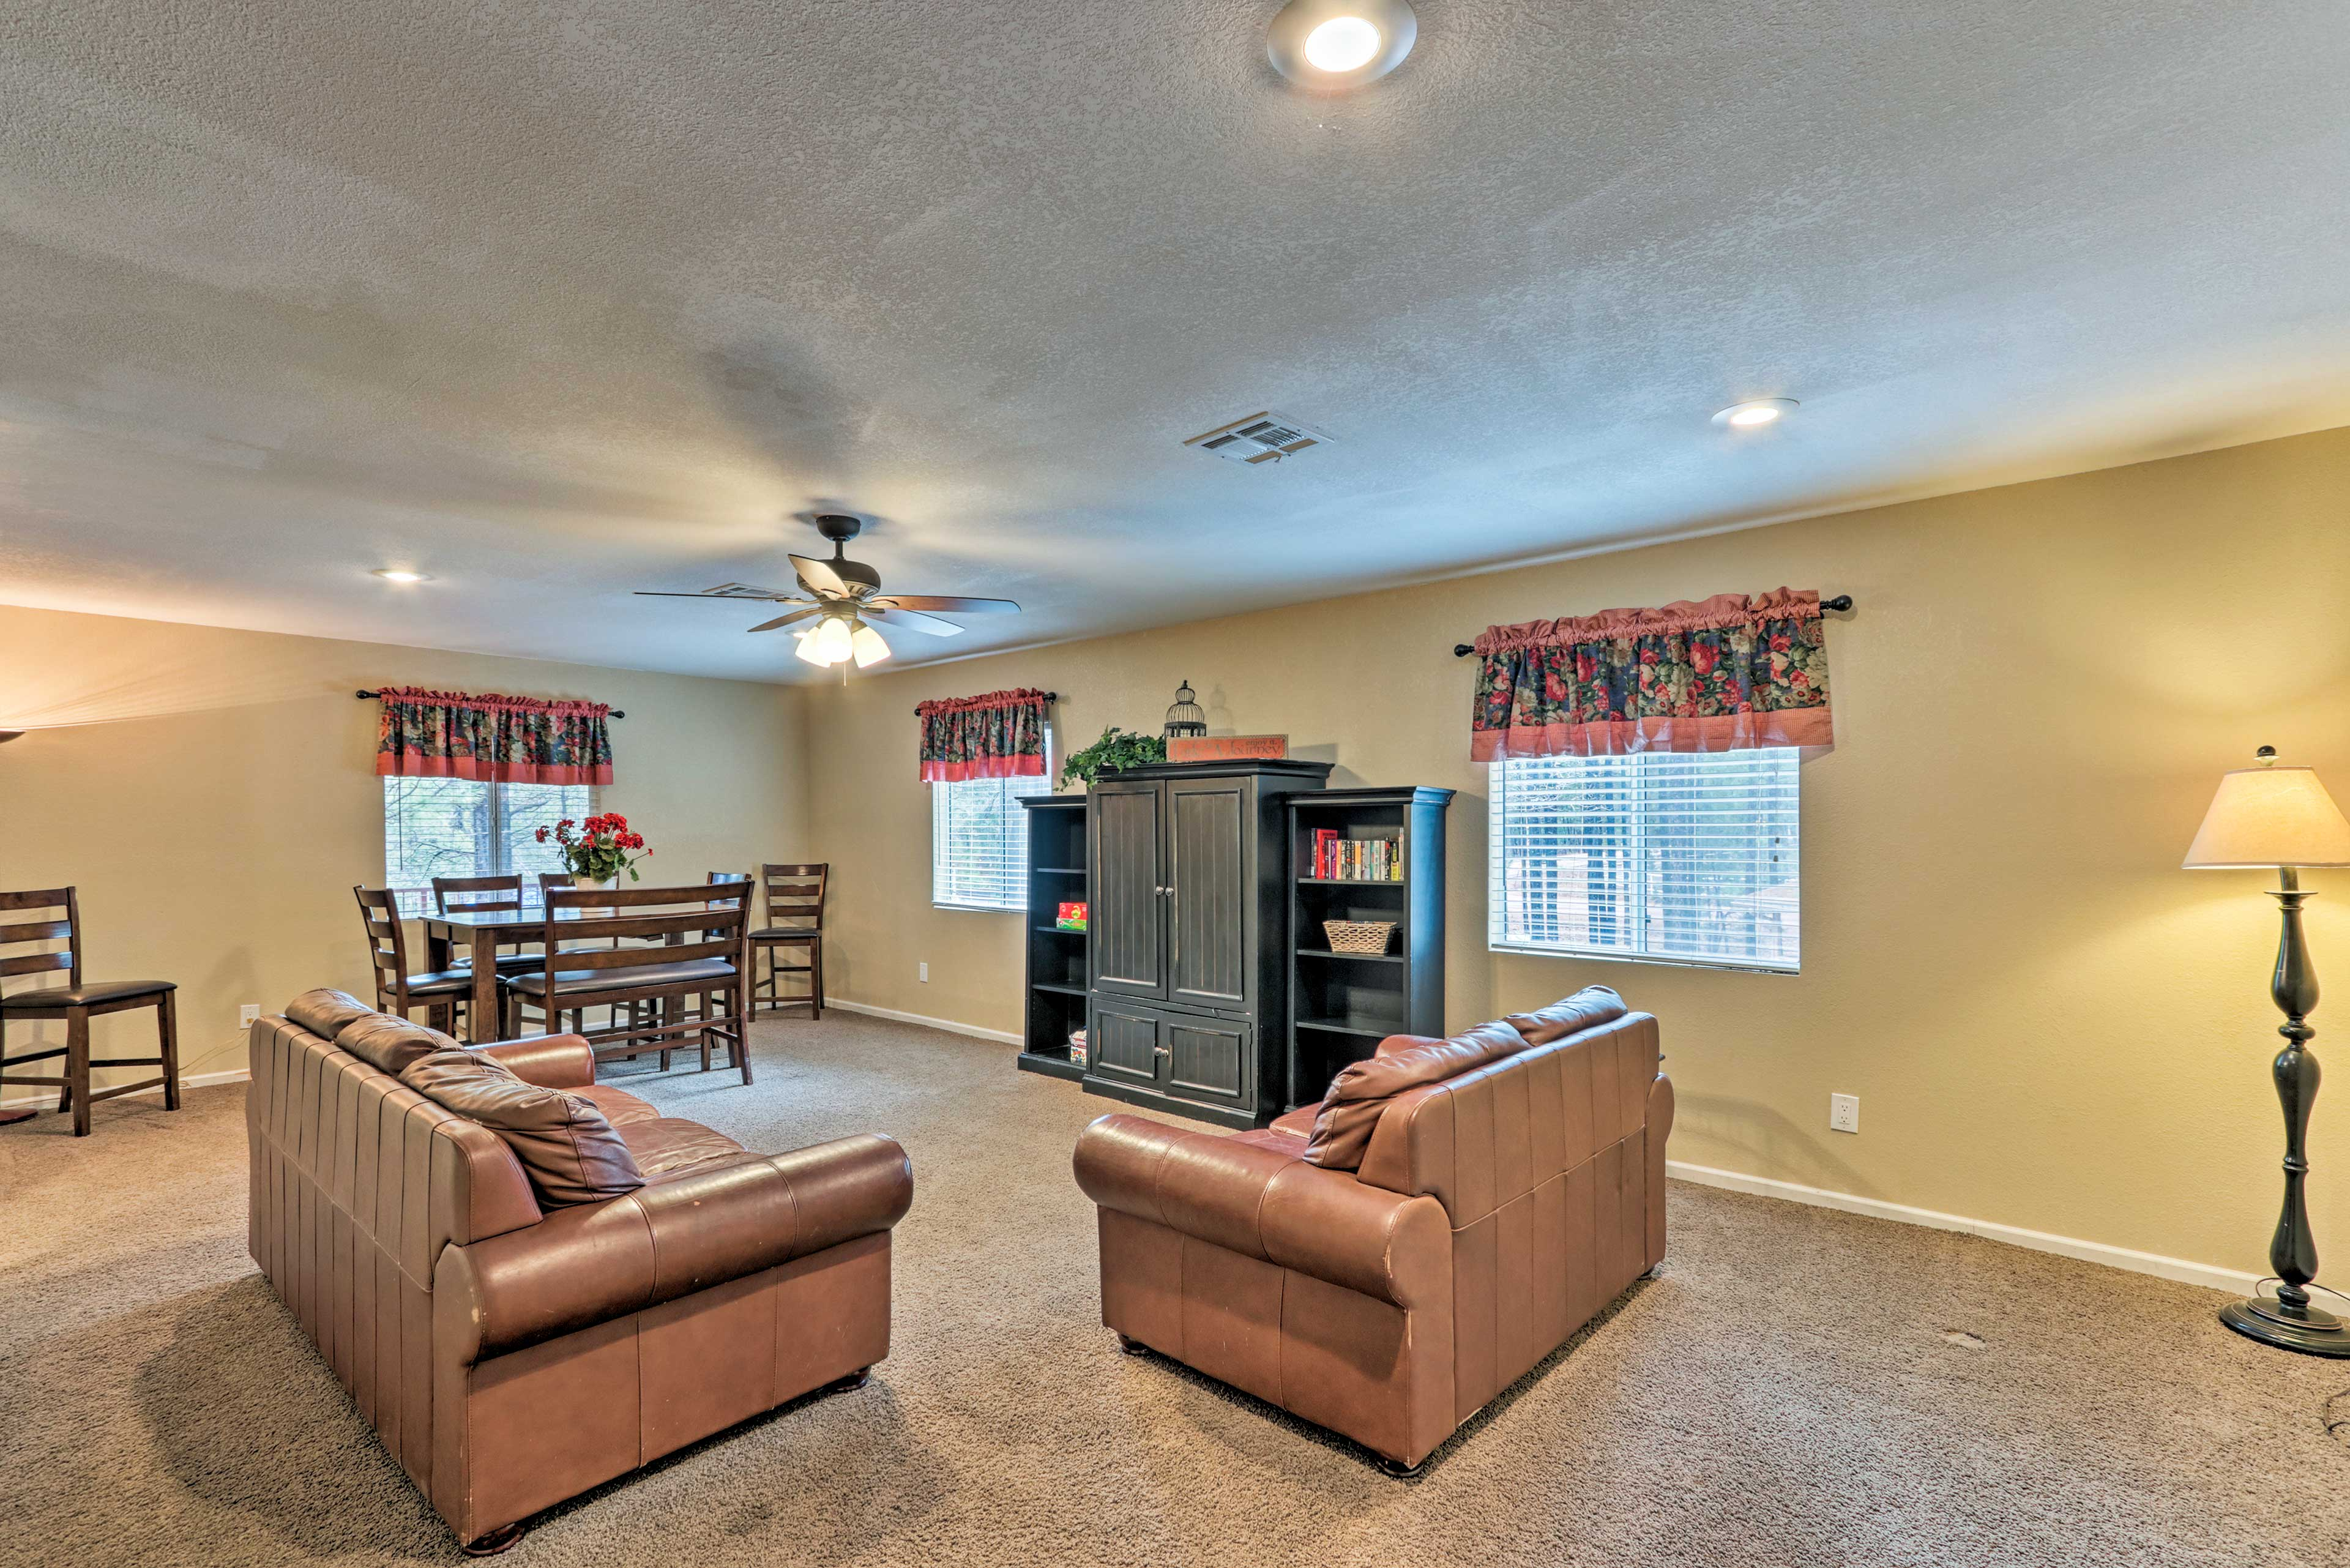 This downstairs space also features another seating and dining area.